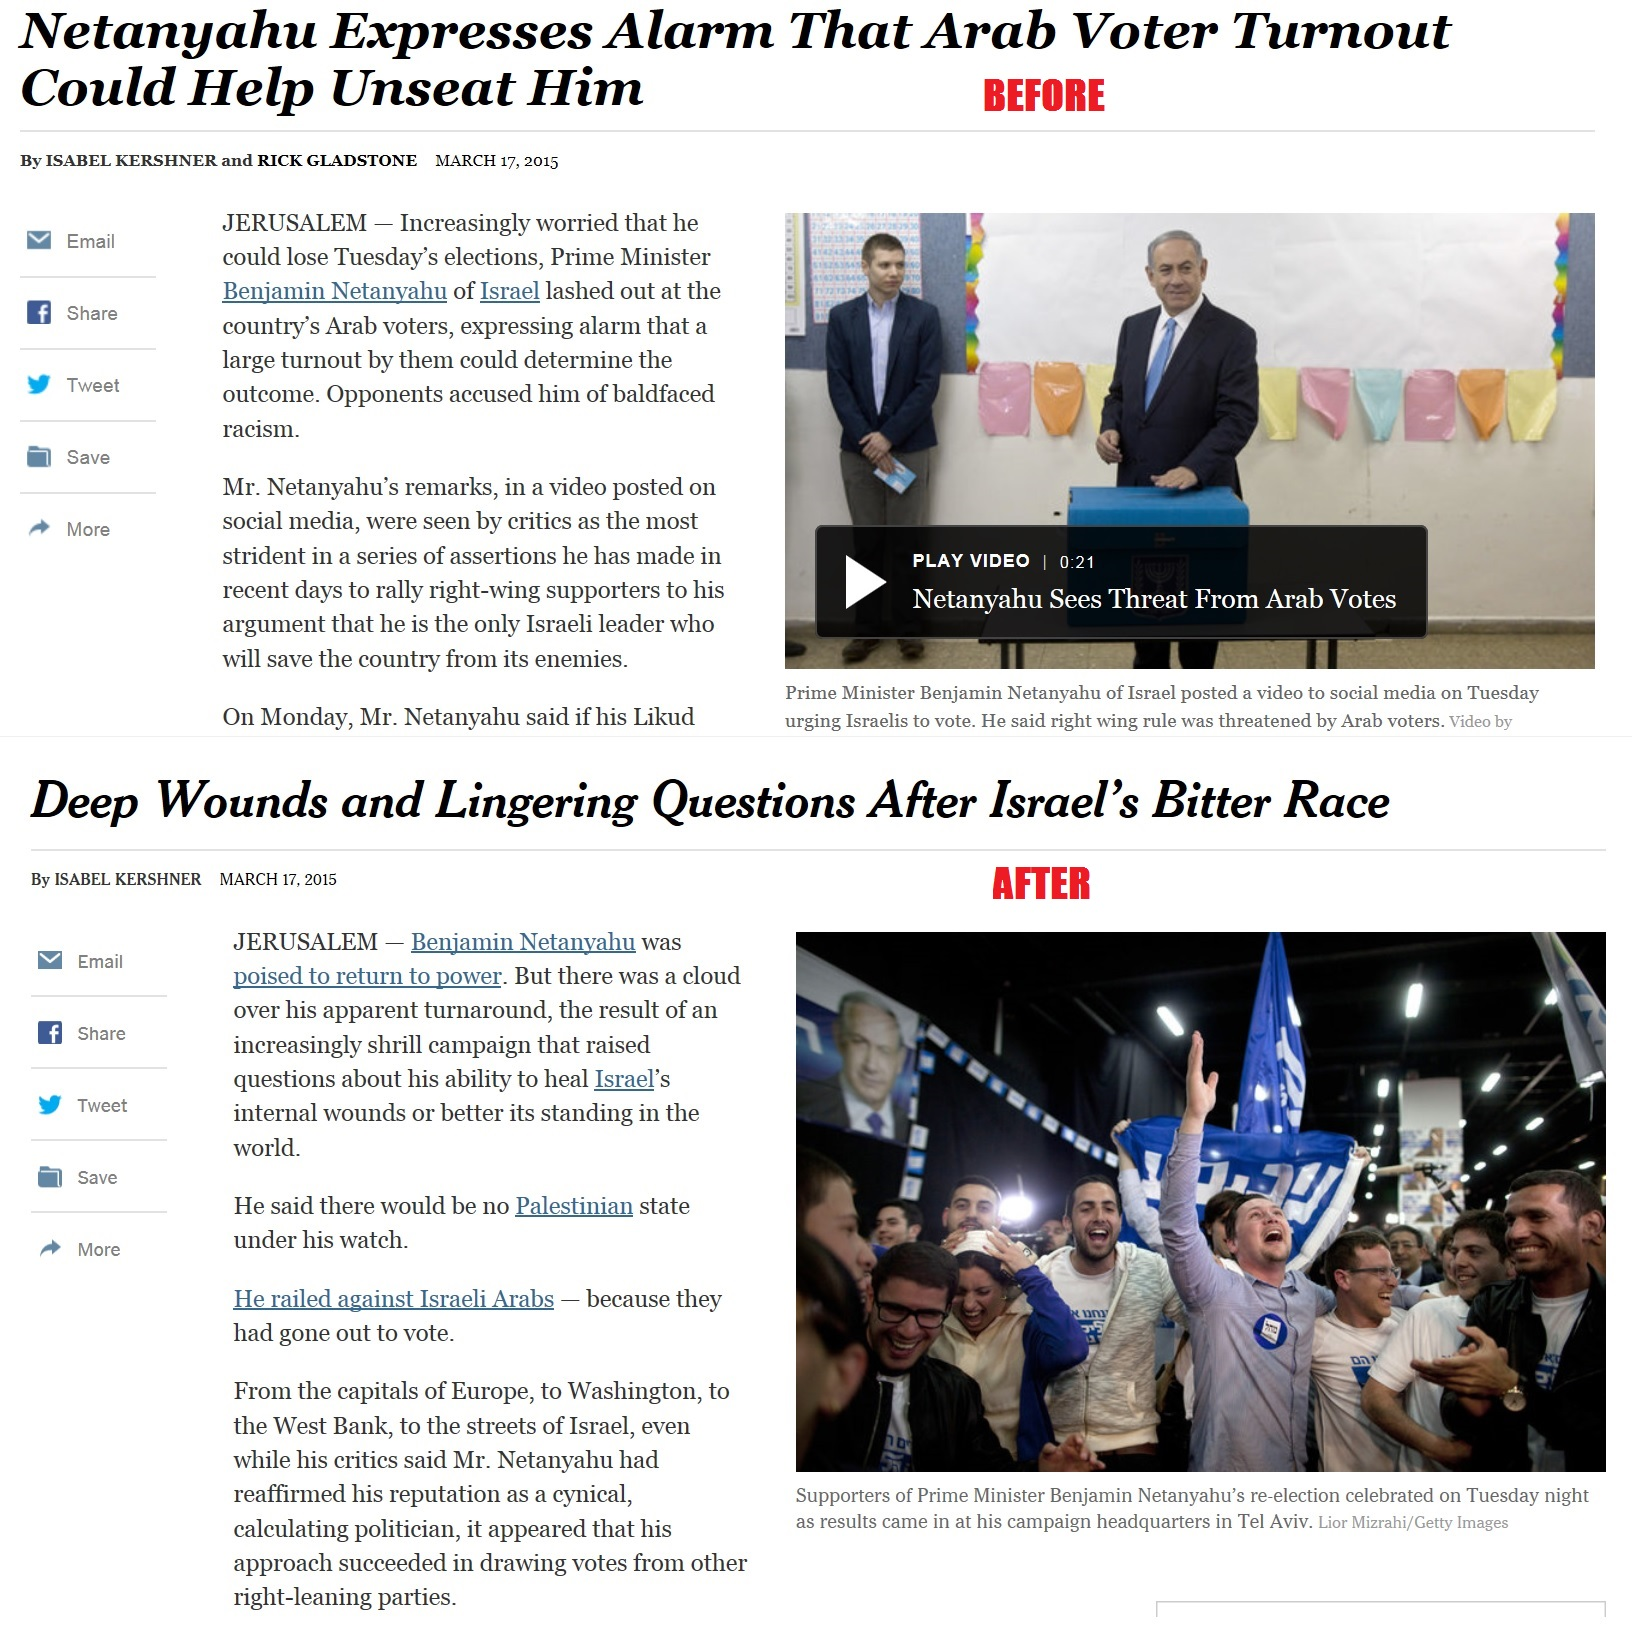 New York Times Published Piece about Netanyahu's Racism, Then Rewrote All of It